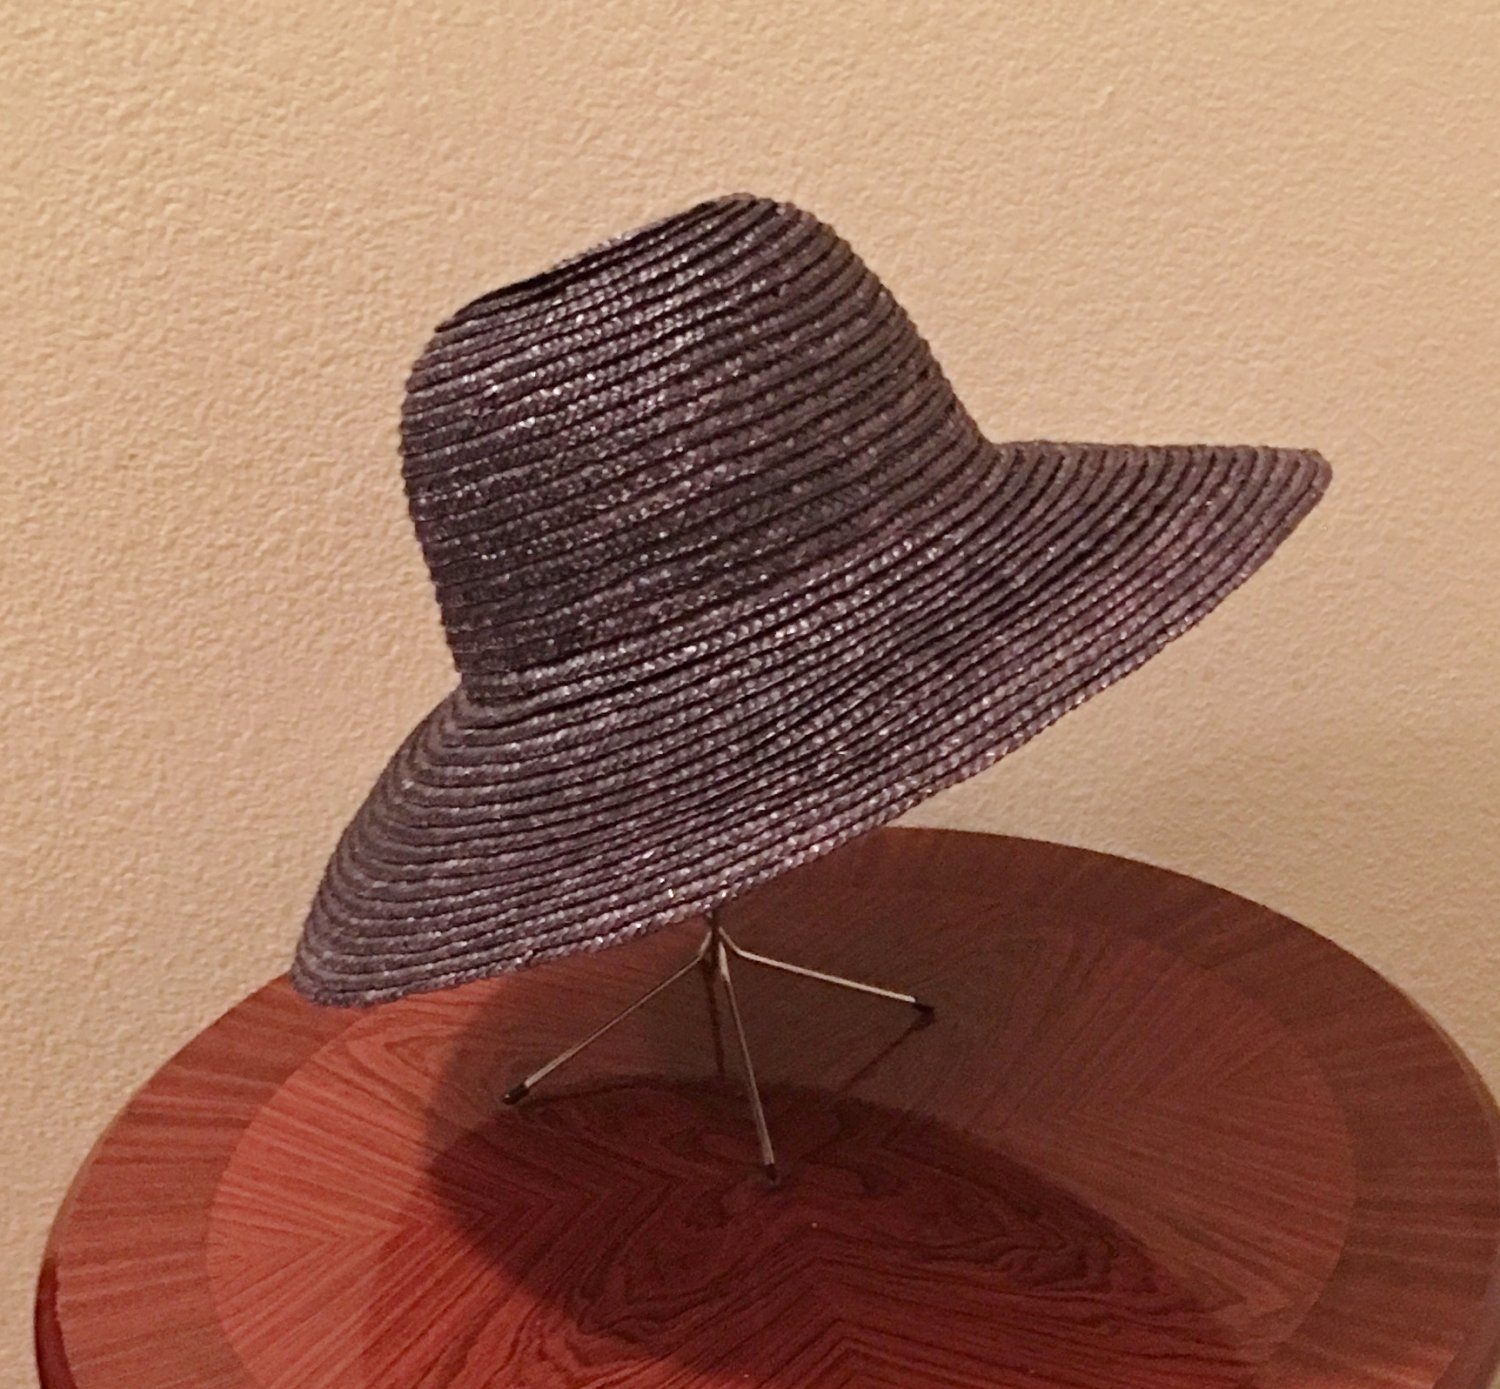 NWT Ladies STRAW HAT Wide Brim Sun Shade BLACK One Size Fits All